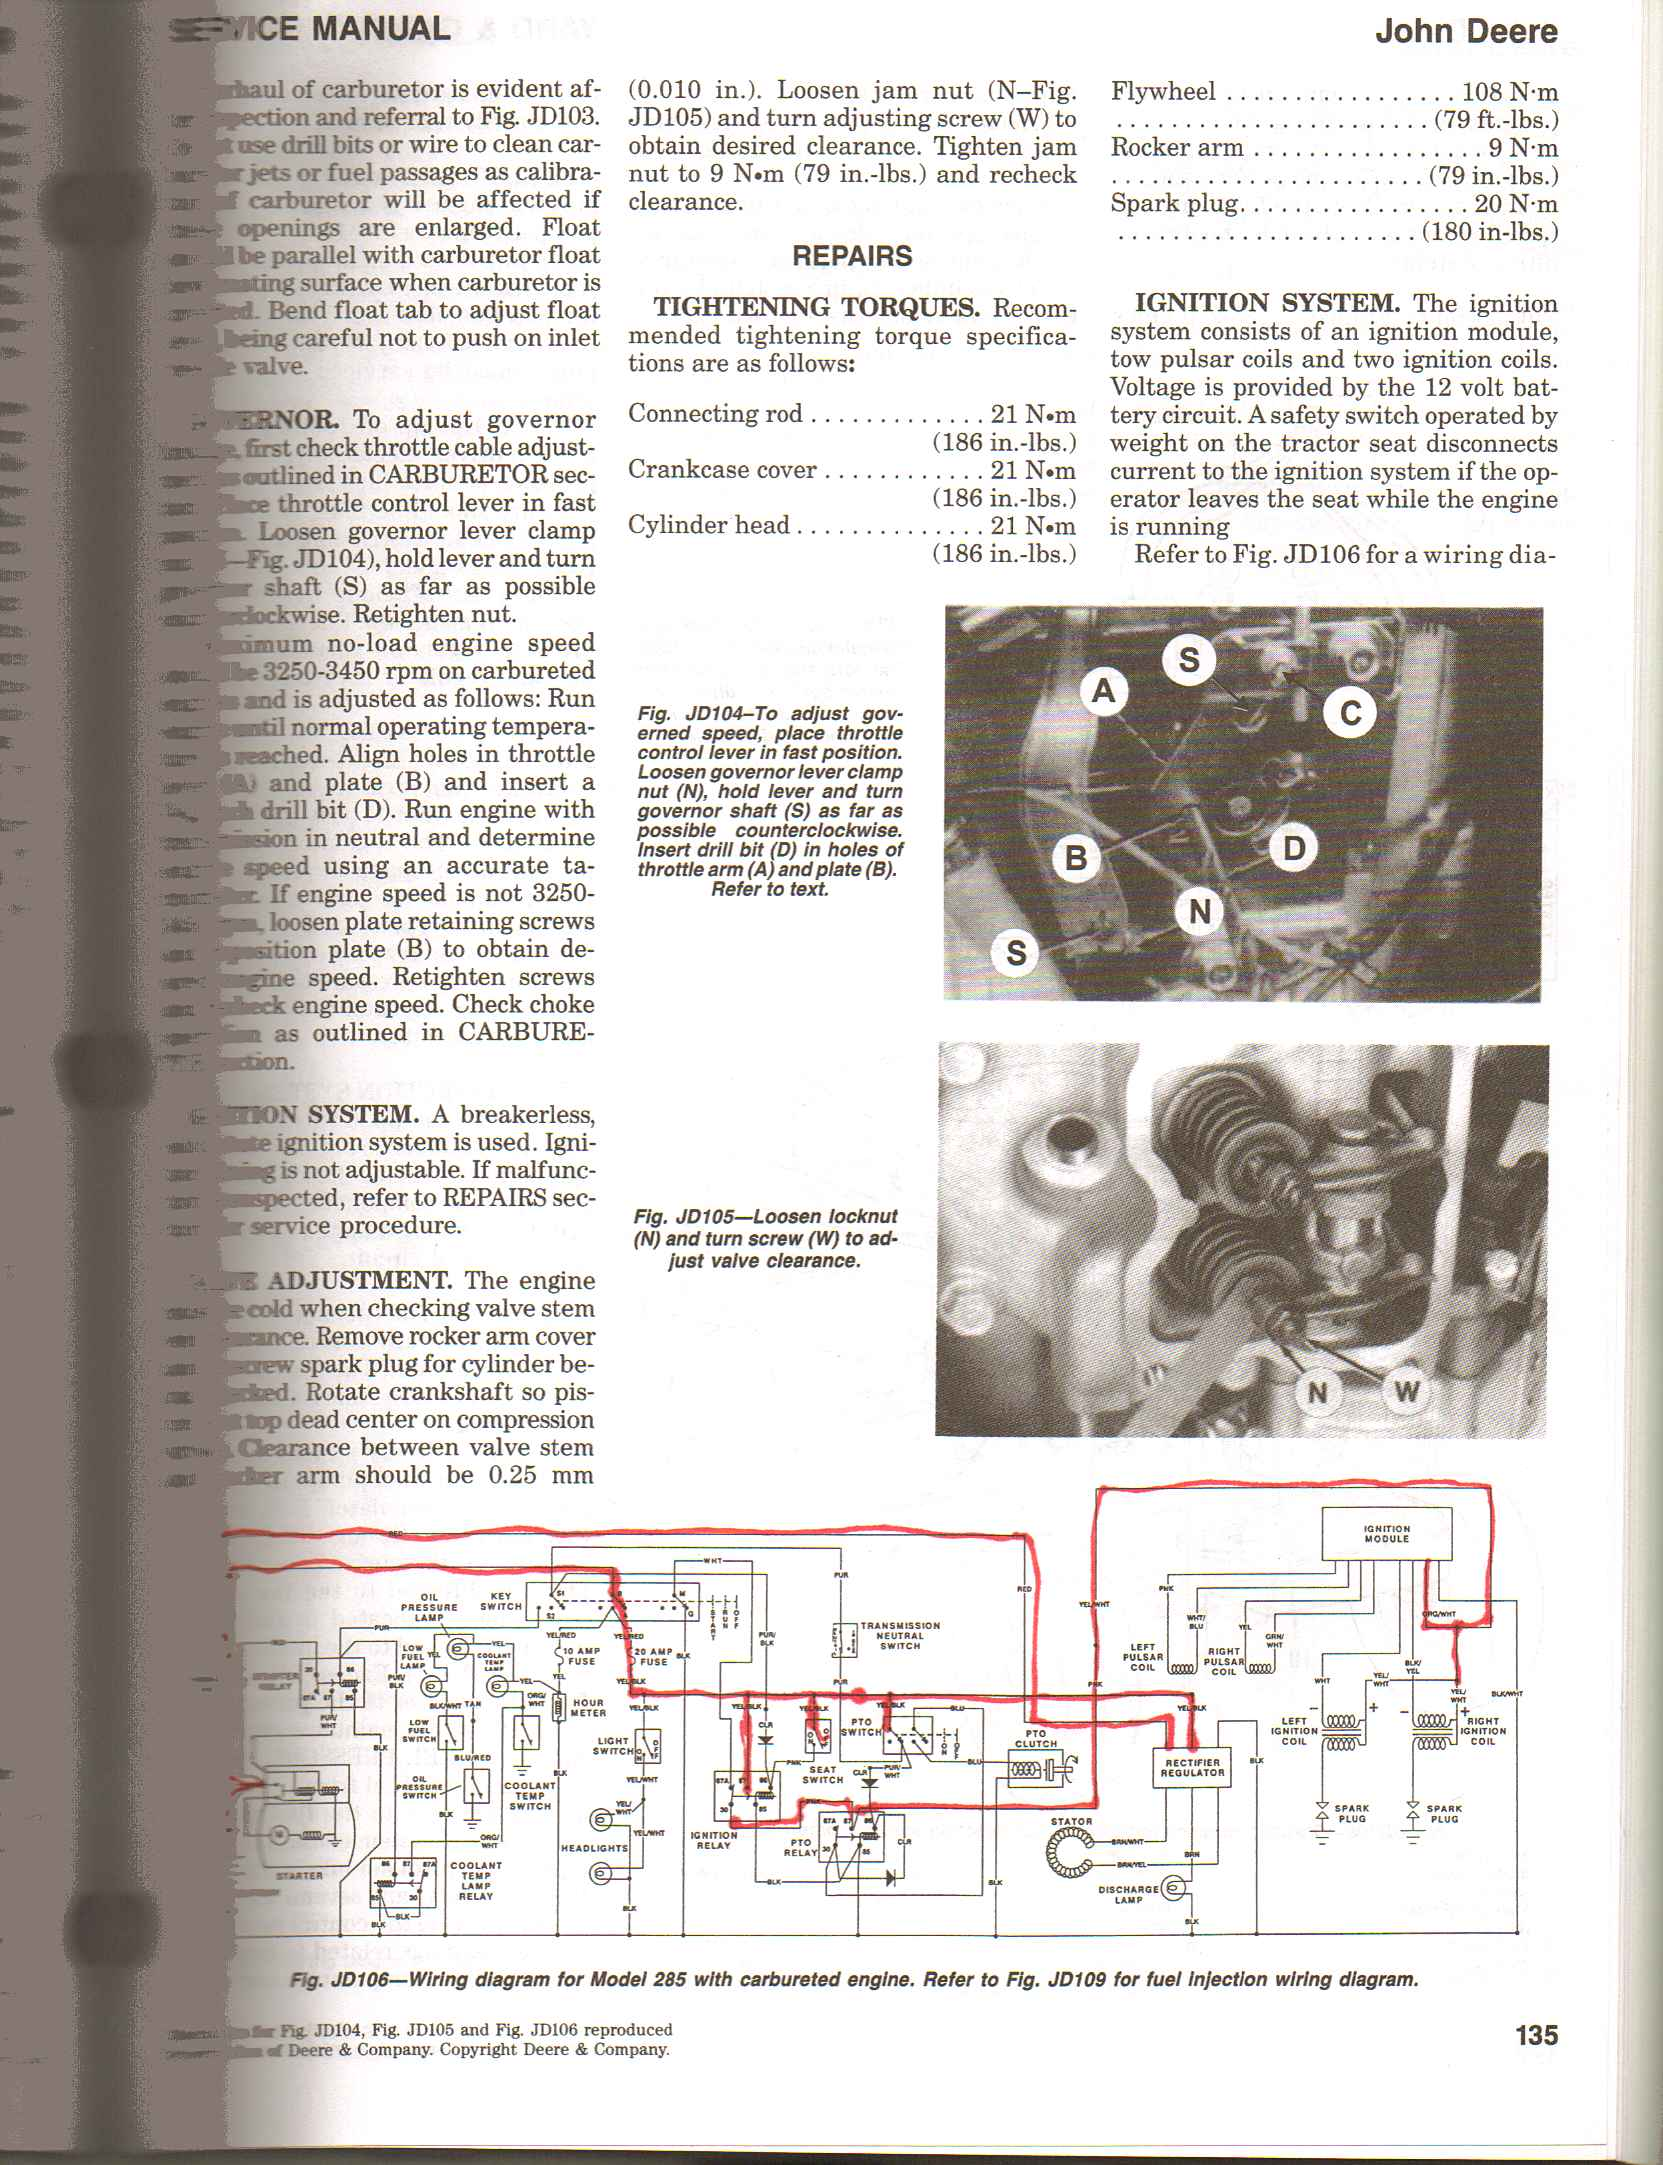 Can someone get me a readable version of the wiring diagram ... on kawasaki carburetor diagram, onan parts diagrams, mercury outboard 115 hp diagrams, john deere electrical diagrams, kawasaki trains, kawasaki 110 atv, kawasaki bayou 220 wiring,